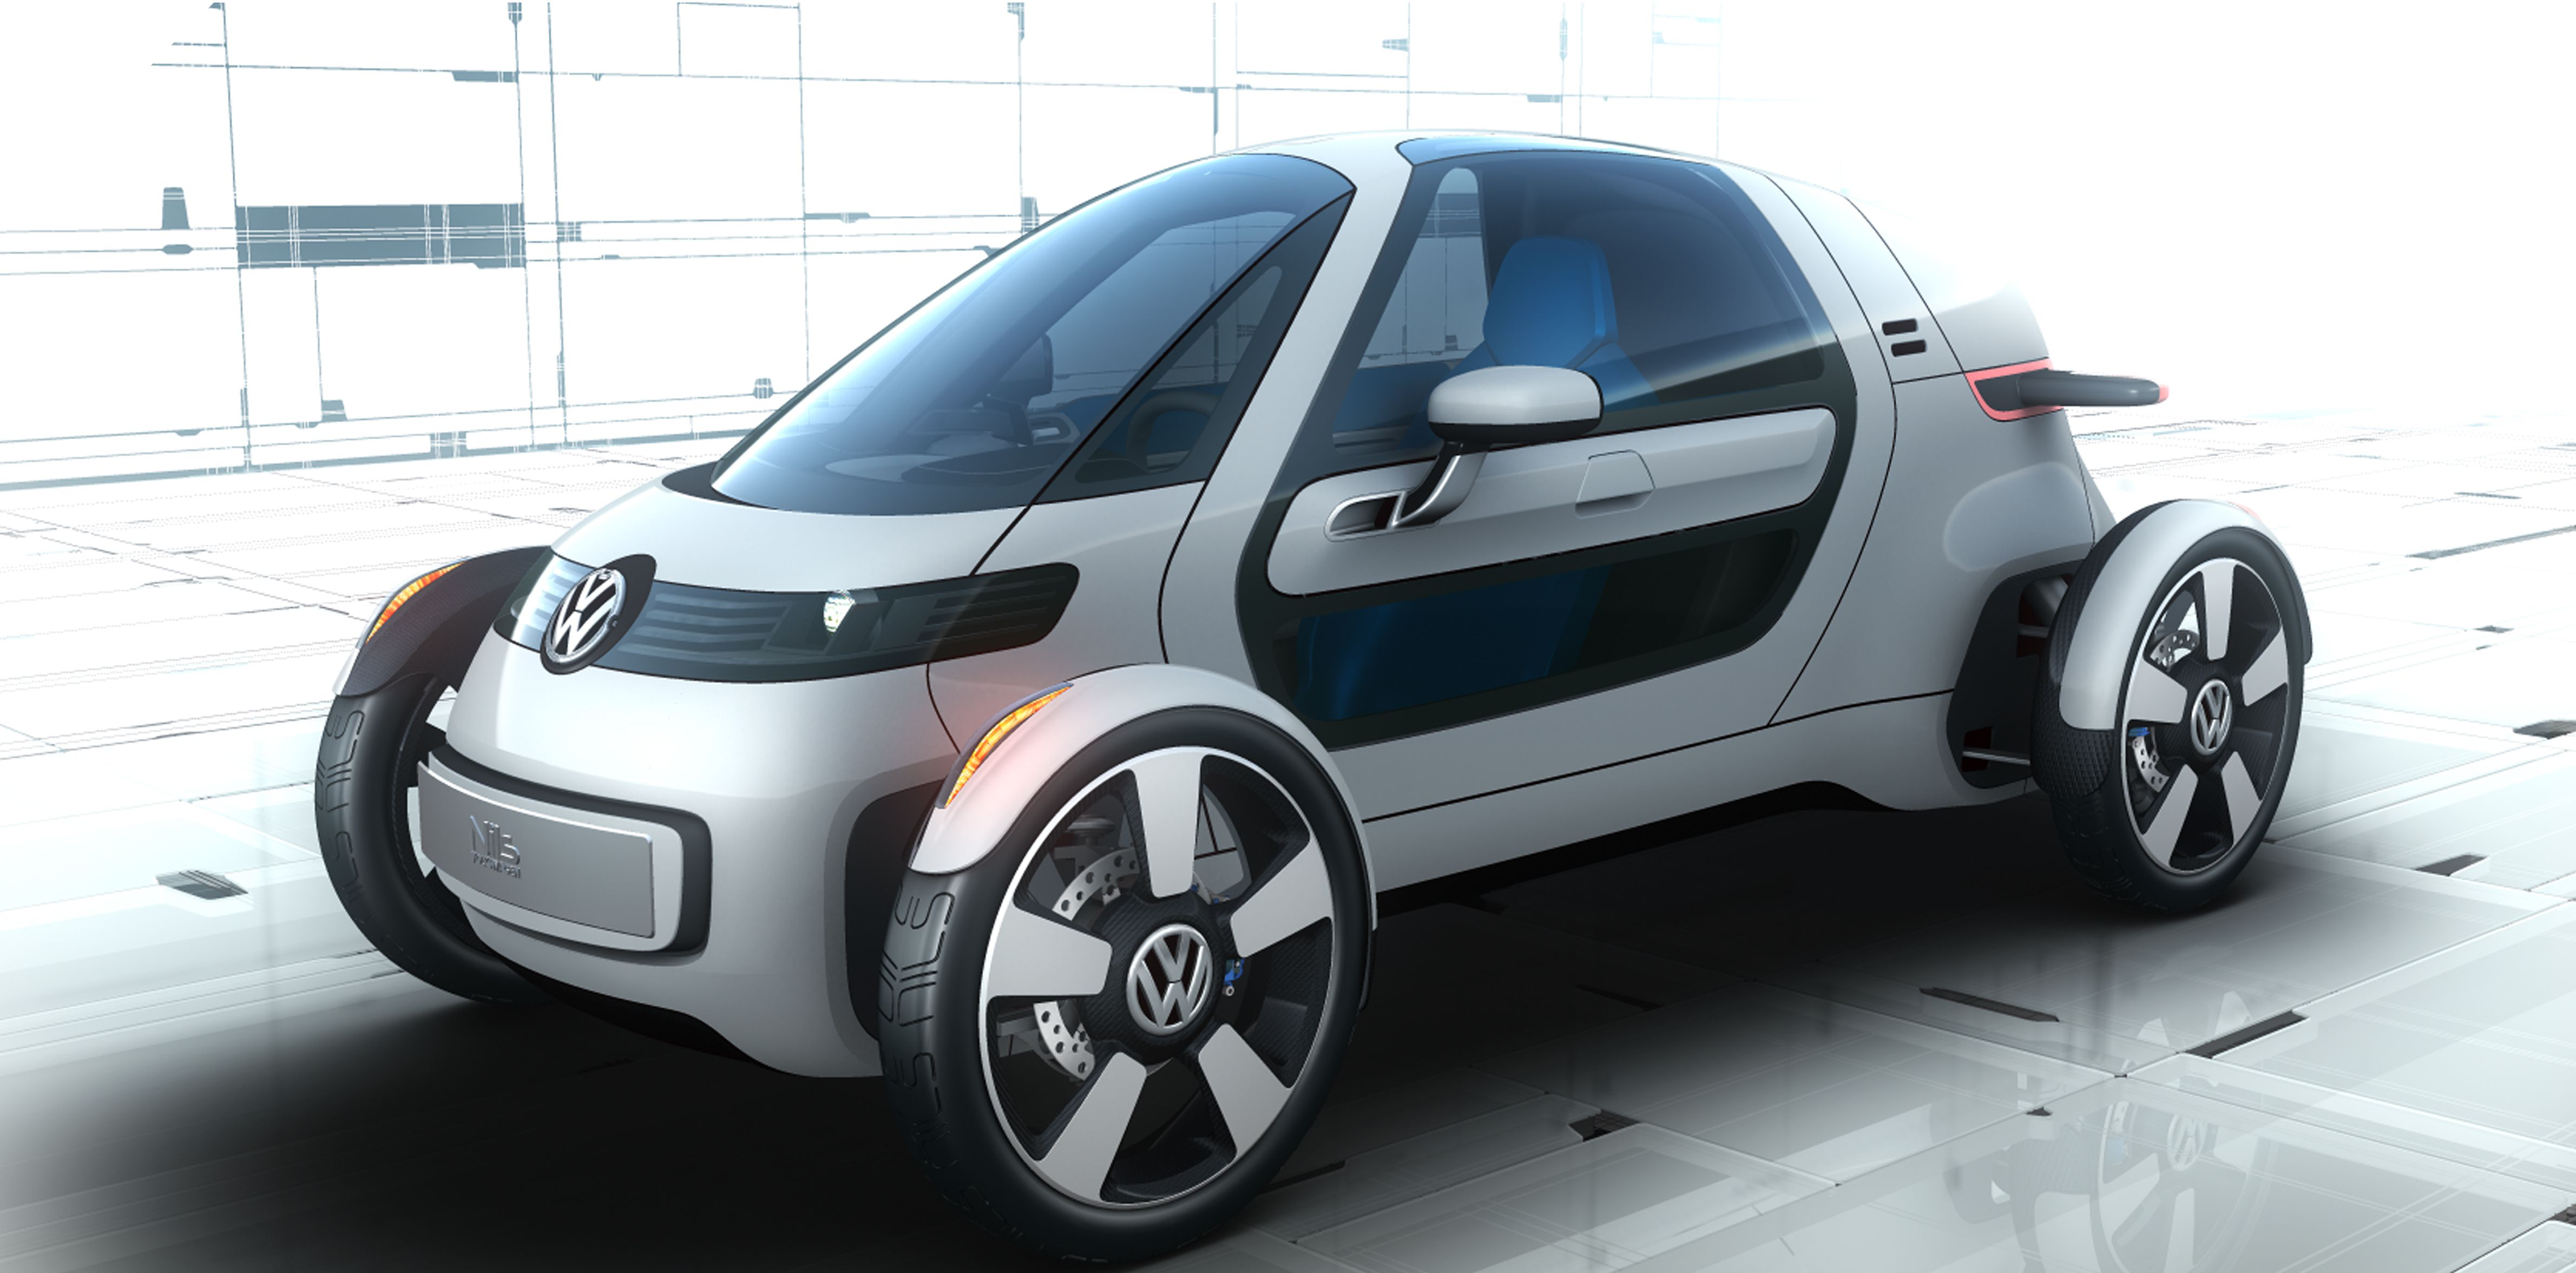 The Volkswagen Nils Is An Electric Commuter Car For Urban World Of Future